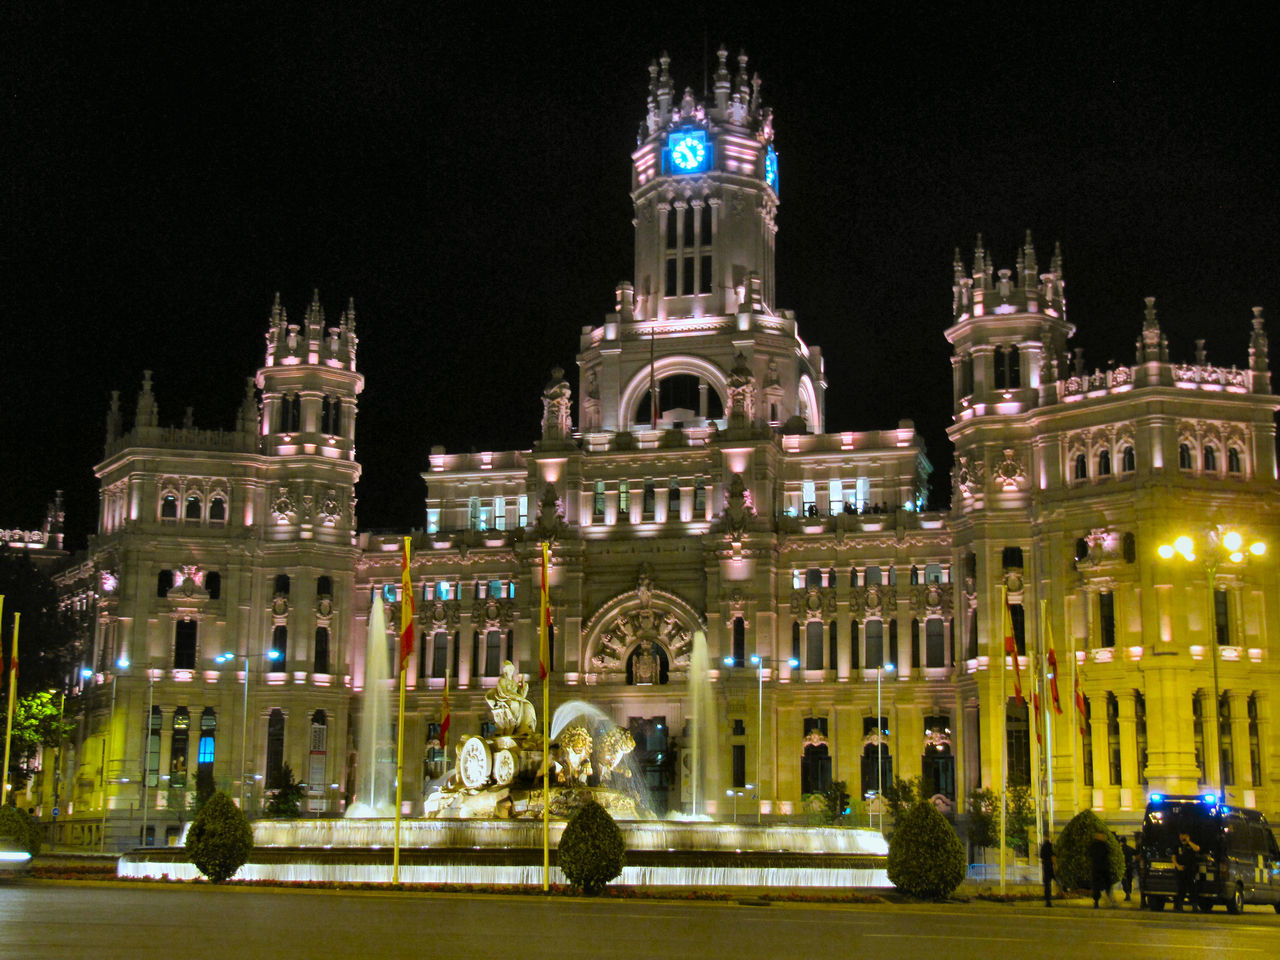 Architecture Building Exterior Capital Cities  Cibeles Illuminated Madrid Night Tourism Travel Destinations Cities At Night